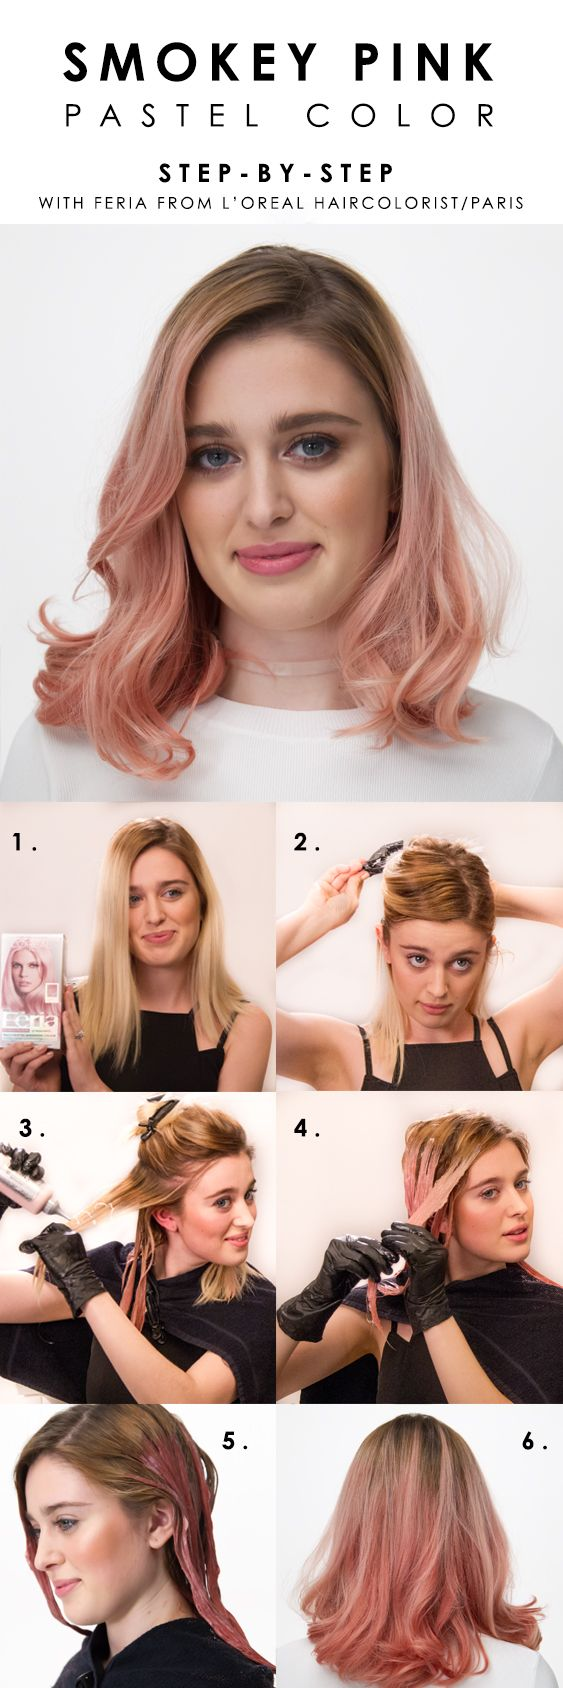 How to color hair pastel pink with L'Oreal Paris Feria Smokey Pastels. Watch Brianna Joy's how-to video for helpful tips and steps on dyeing hair light pink at home.